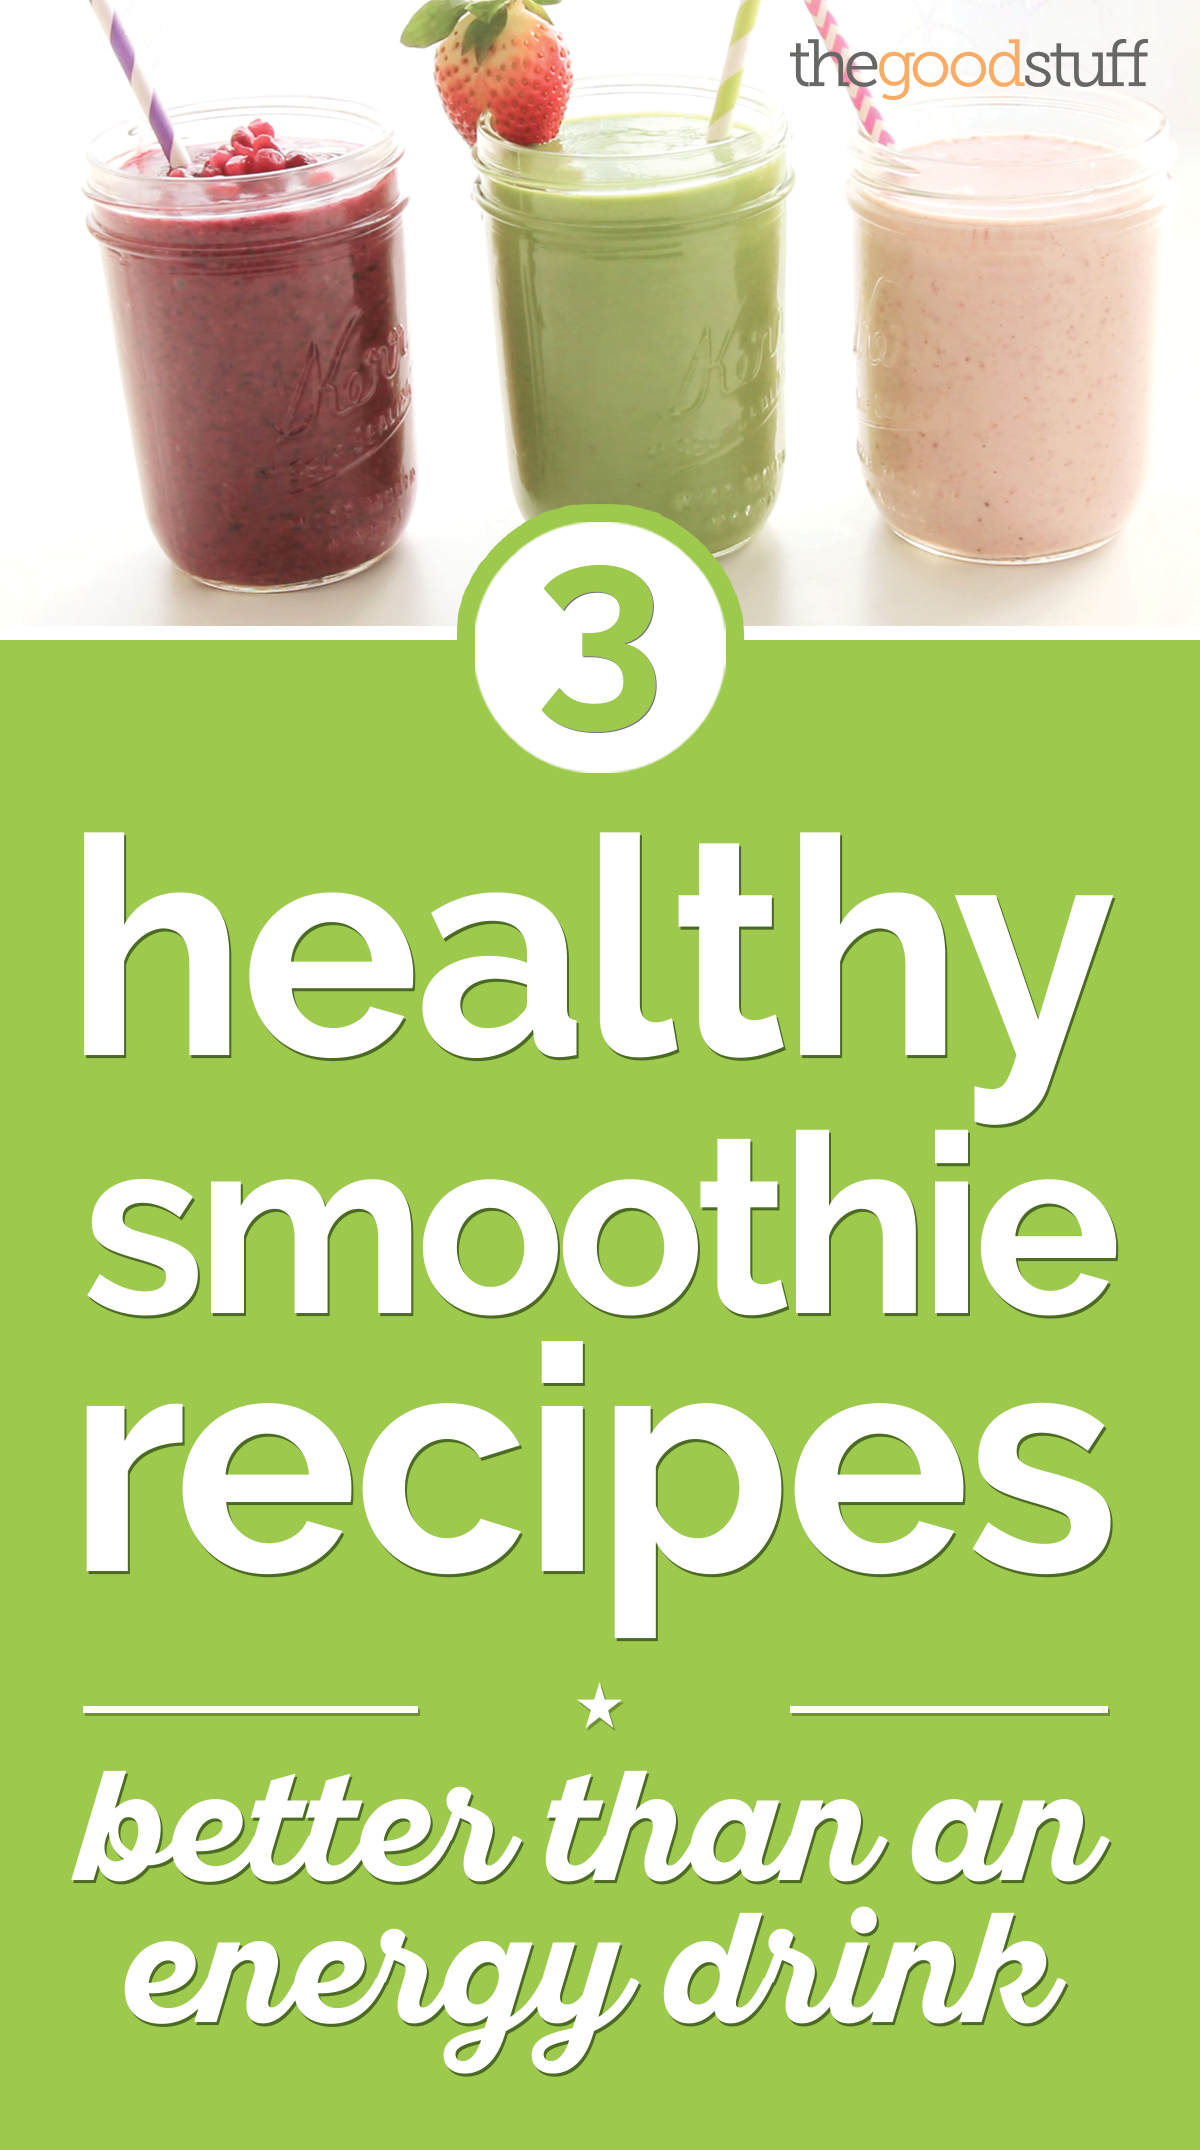 3 Healthy Smoothie Recipes Better Than an Energy Drink [Video] | thegoodstuff